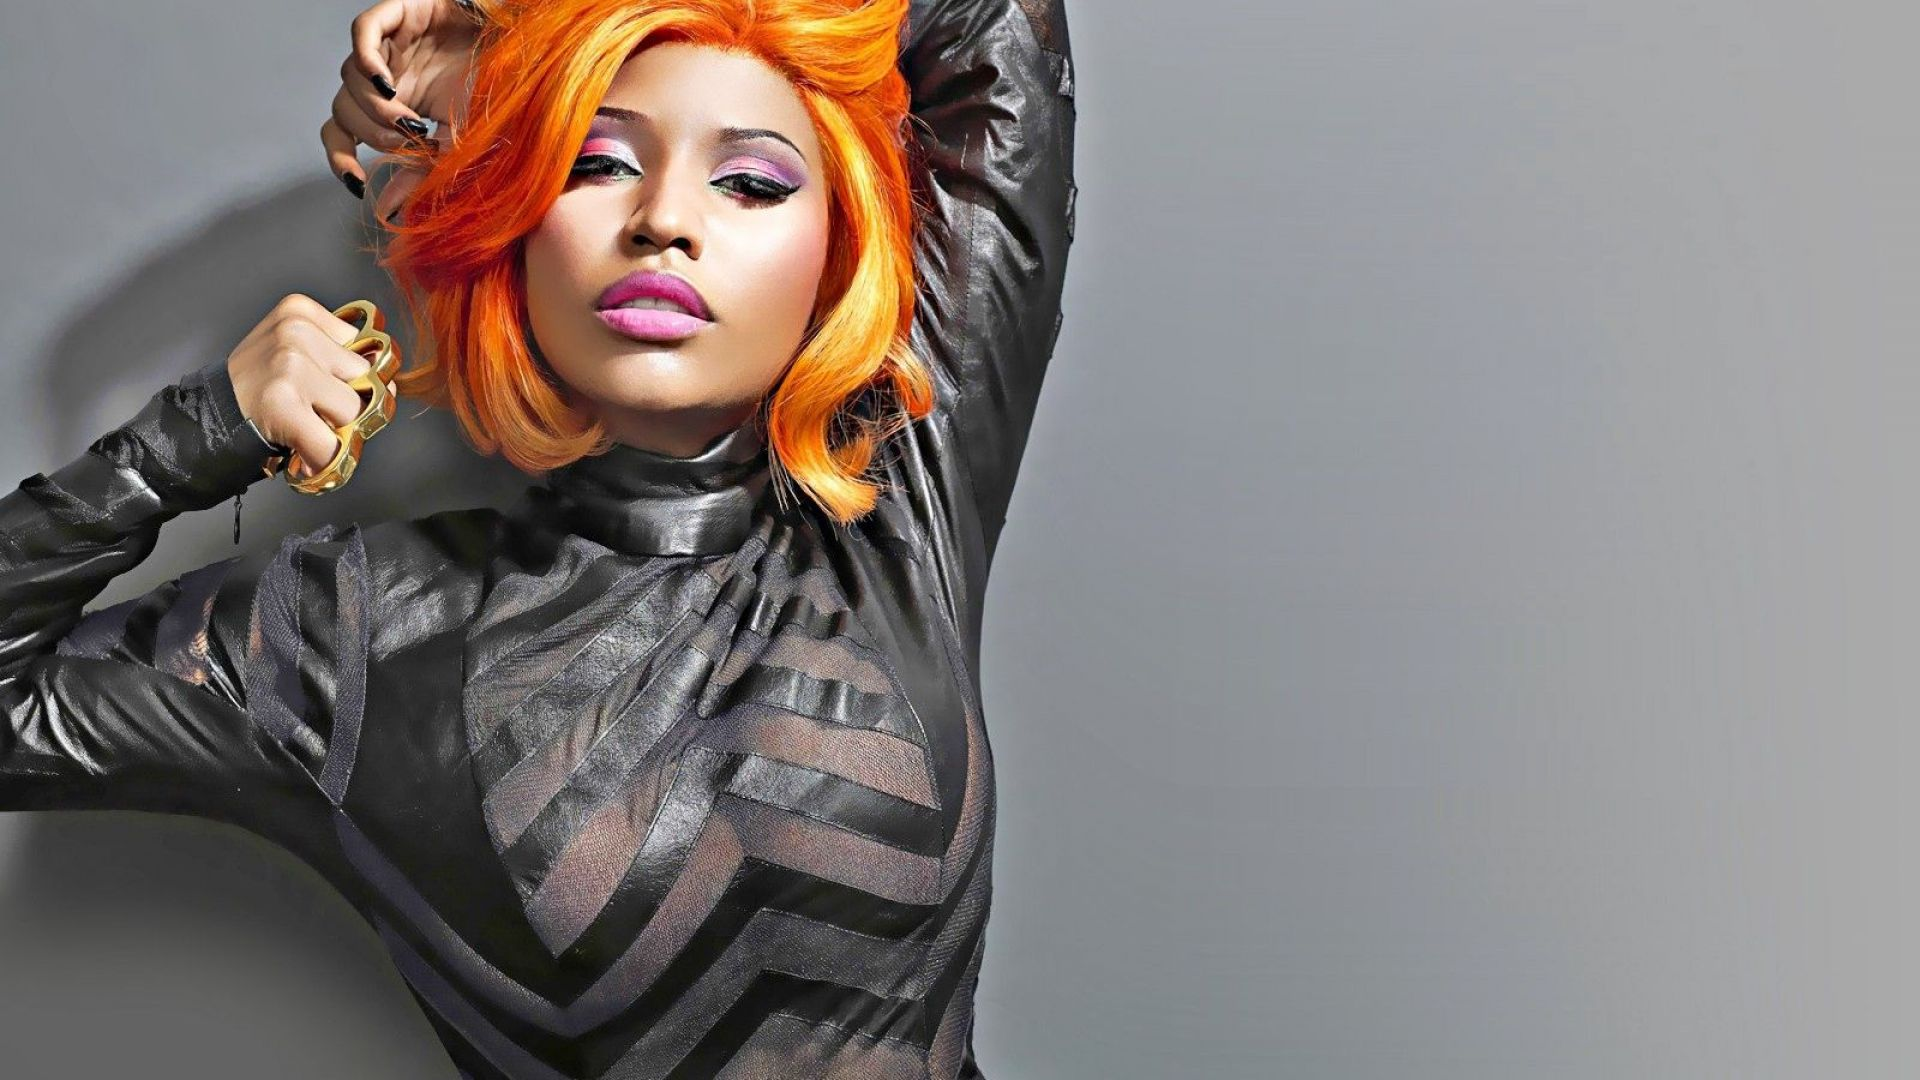 Nicki minaj full hd wallpaper and background image 1920x1080 id music nicki minaj wallpaper voltagebd Image collections